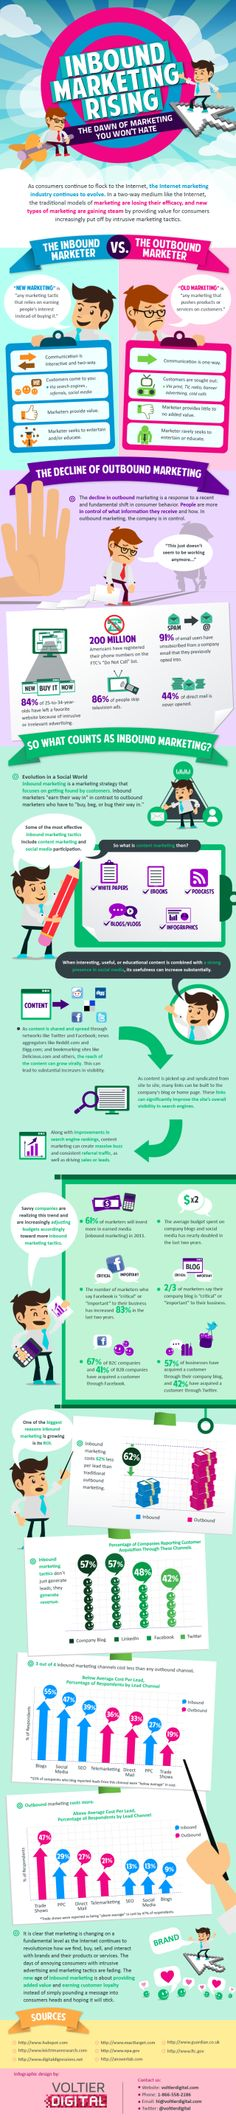 Inbound Marketing Is Rising, Learn The Stats   Infographic